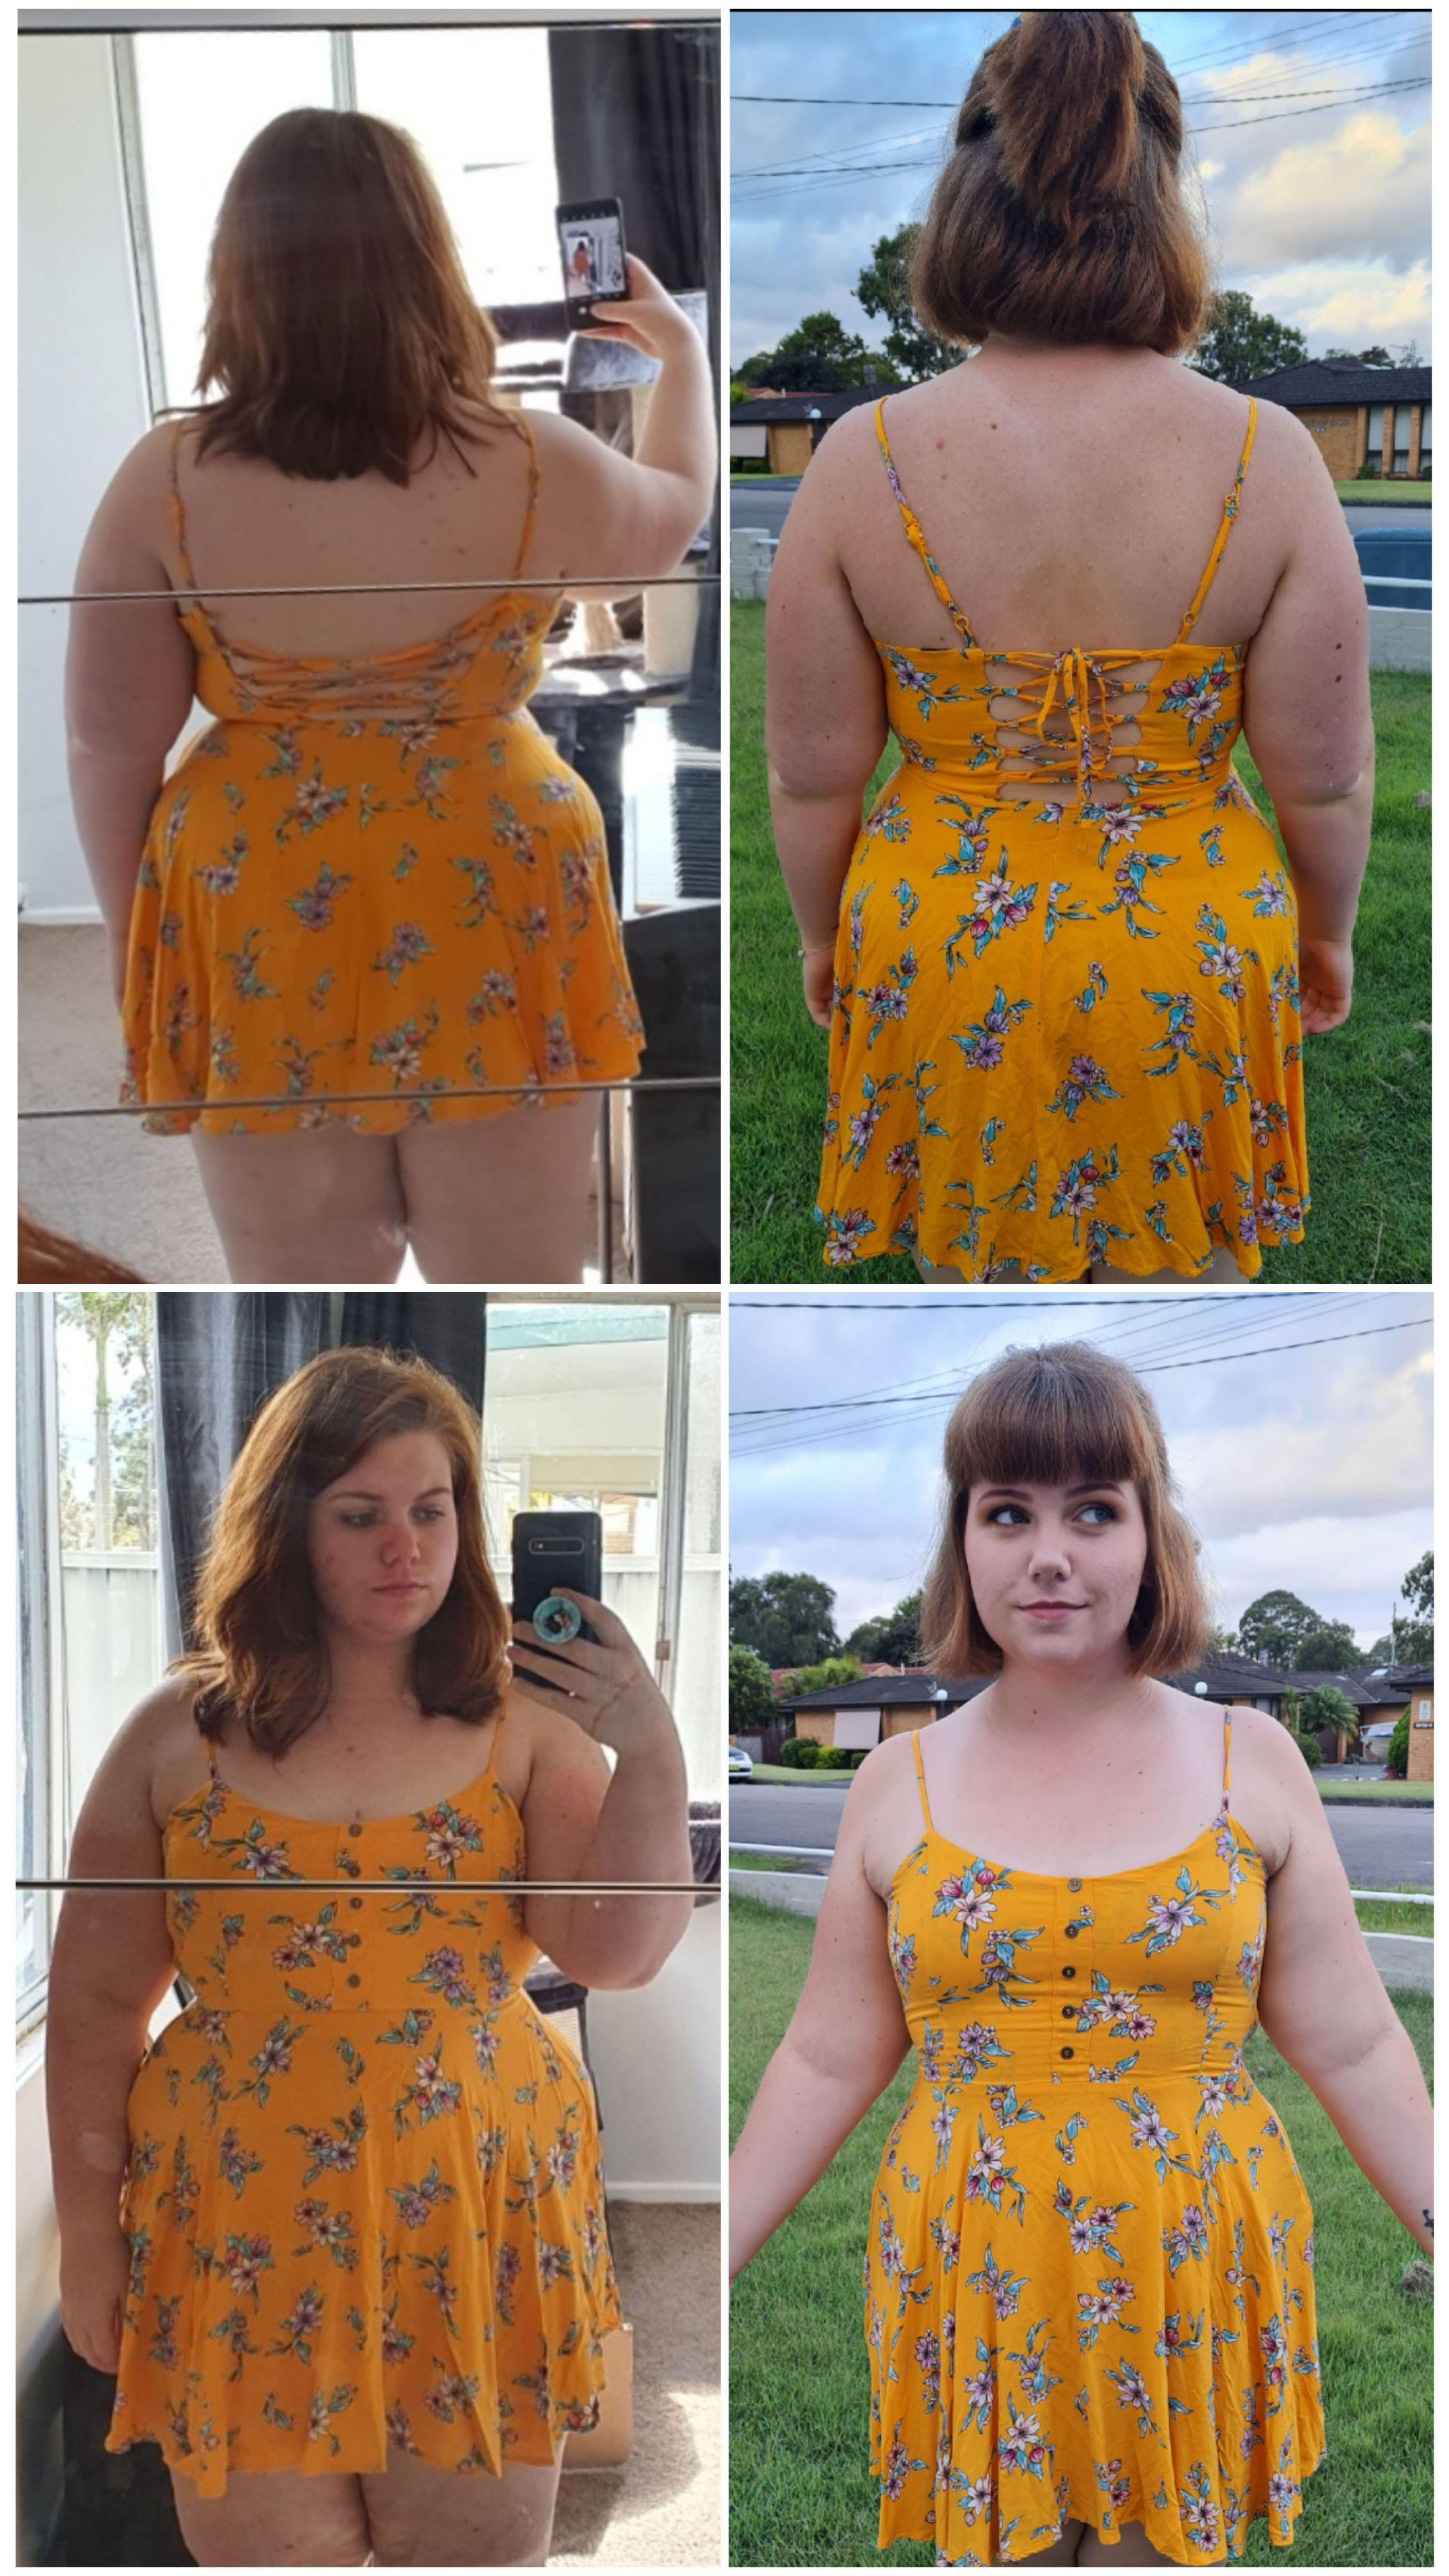 53 lbs Fat Loss Before and After 5'6 Female 271 lbs to 218 lbs